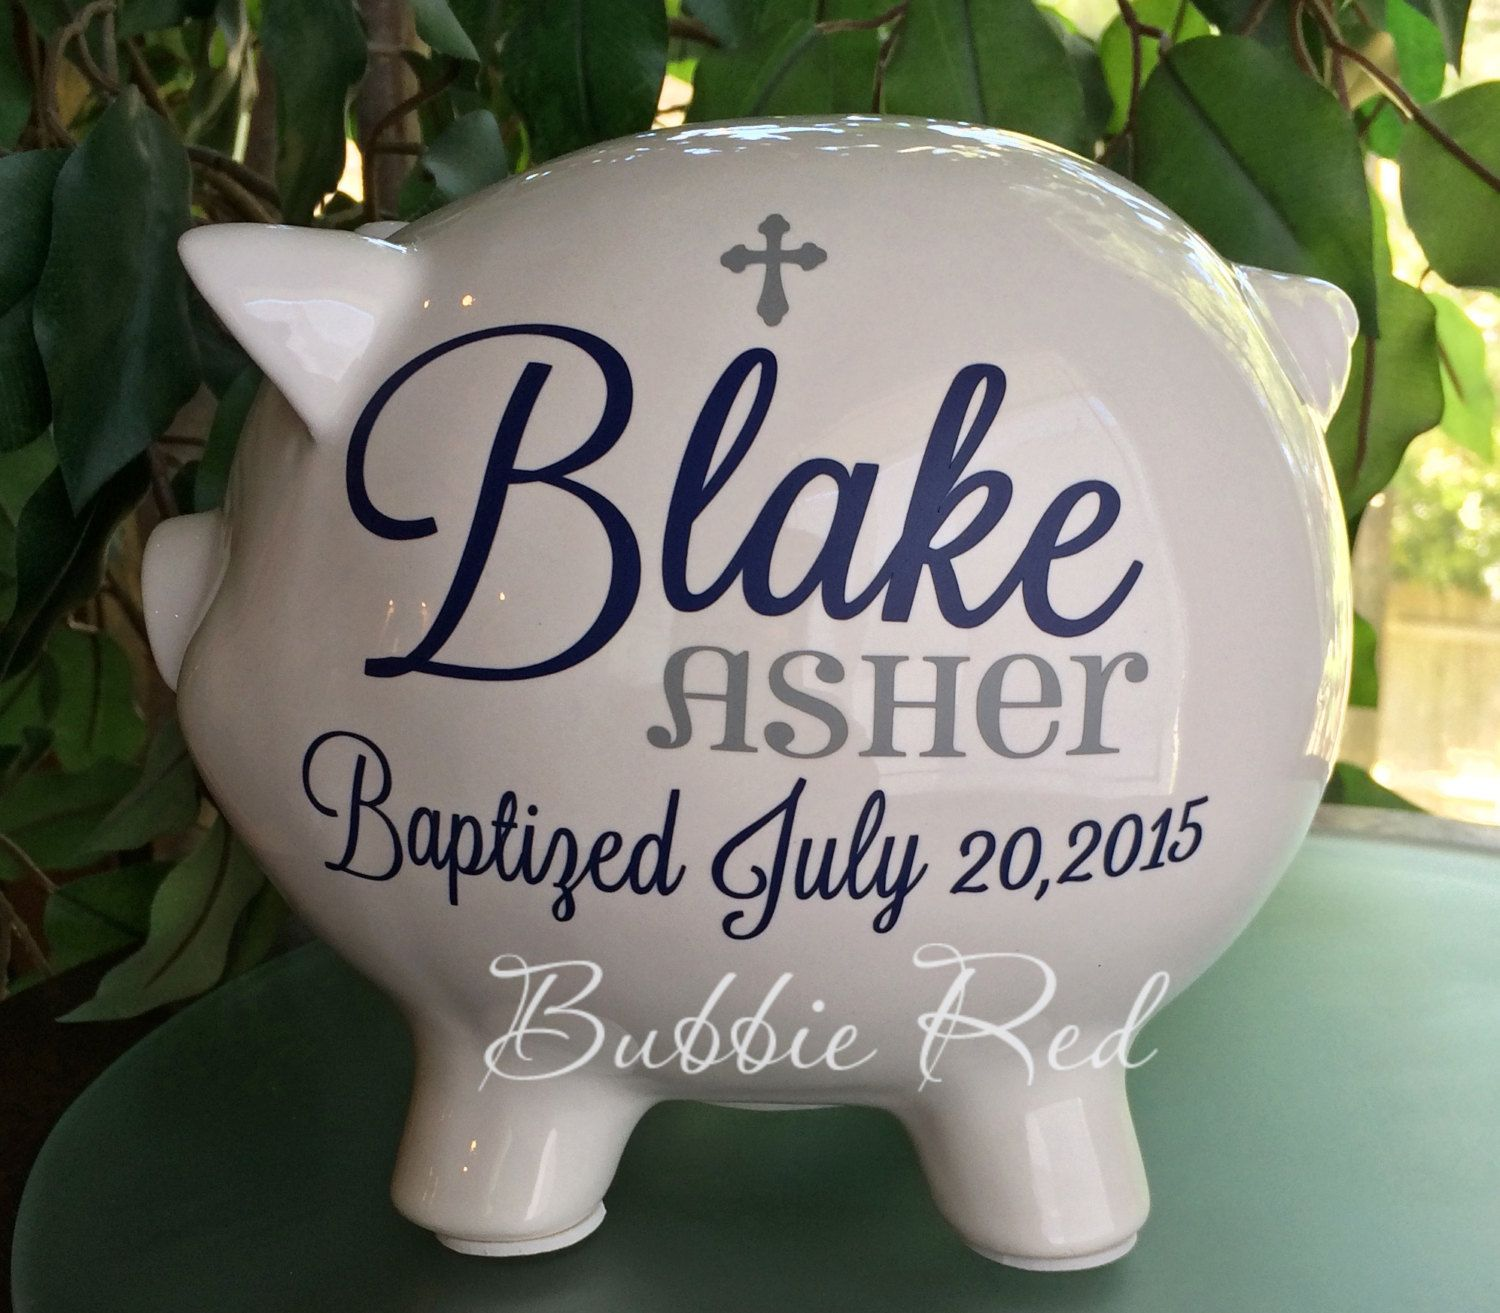 Baptism gift christening gift personalized piggy bank baby girl baptism gift christening gift personalized piggy bank baby girlboy christening gift custom baptism gift for baby by bubbiered on etsy negle Gallery